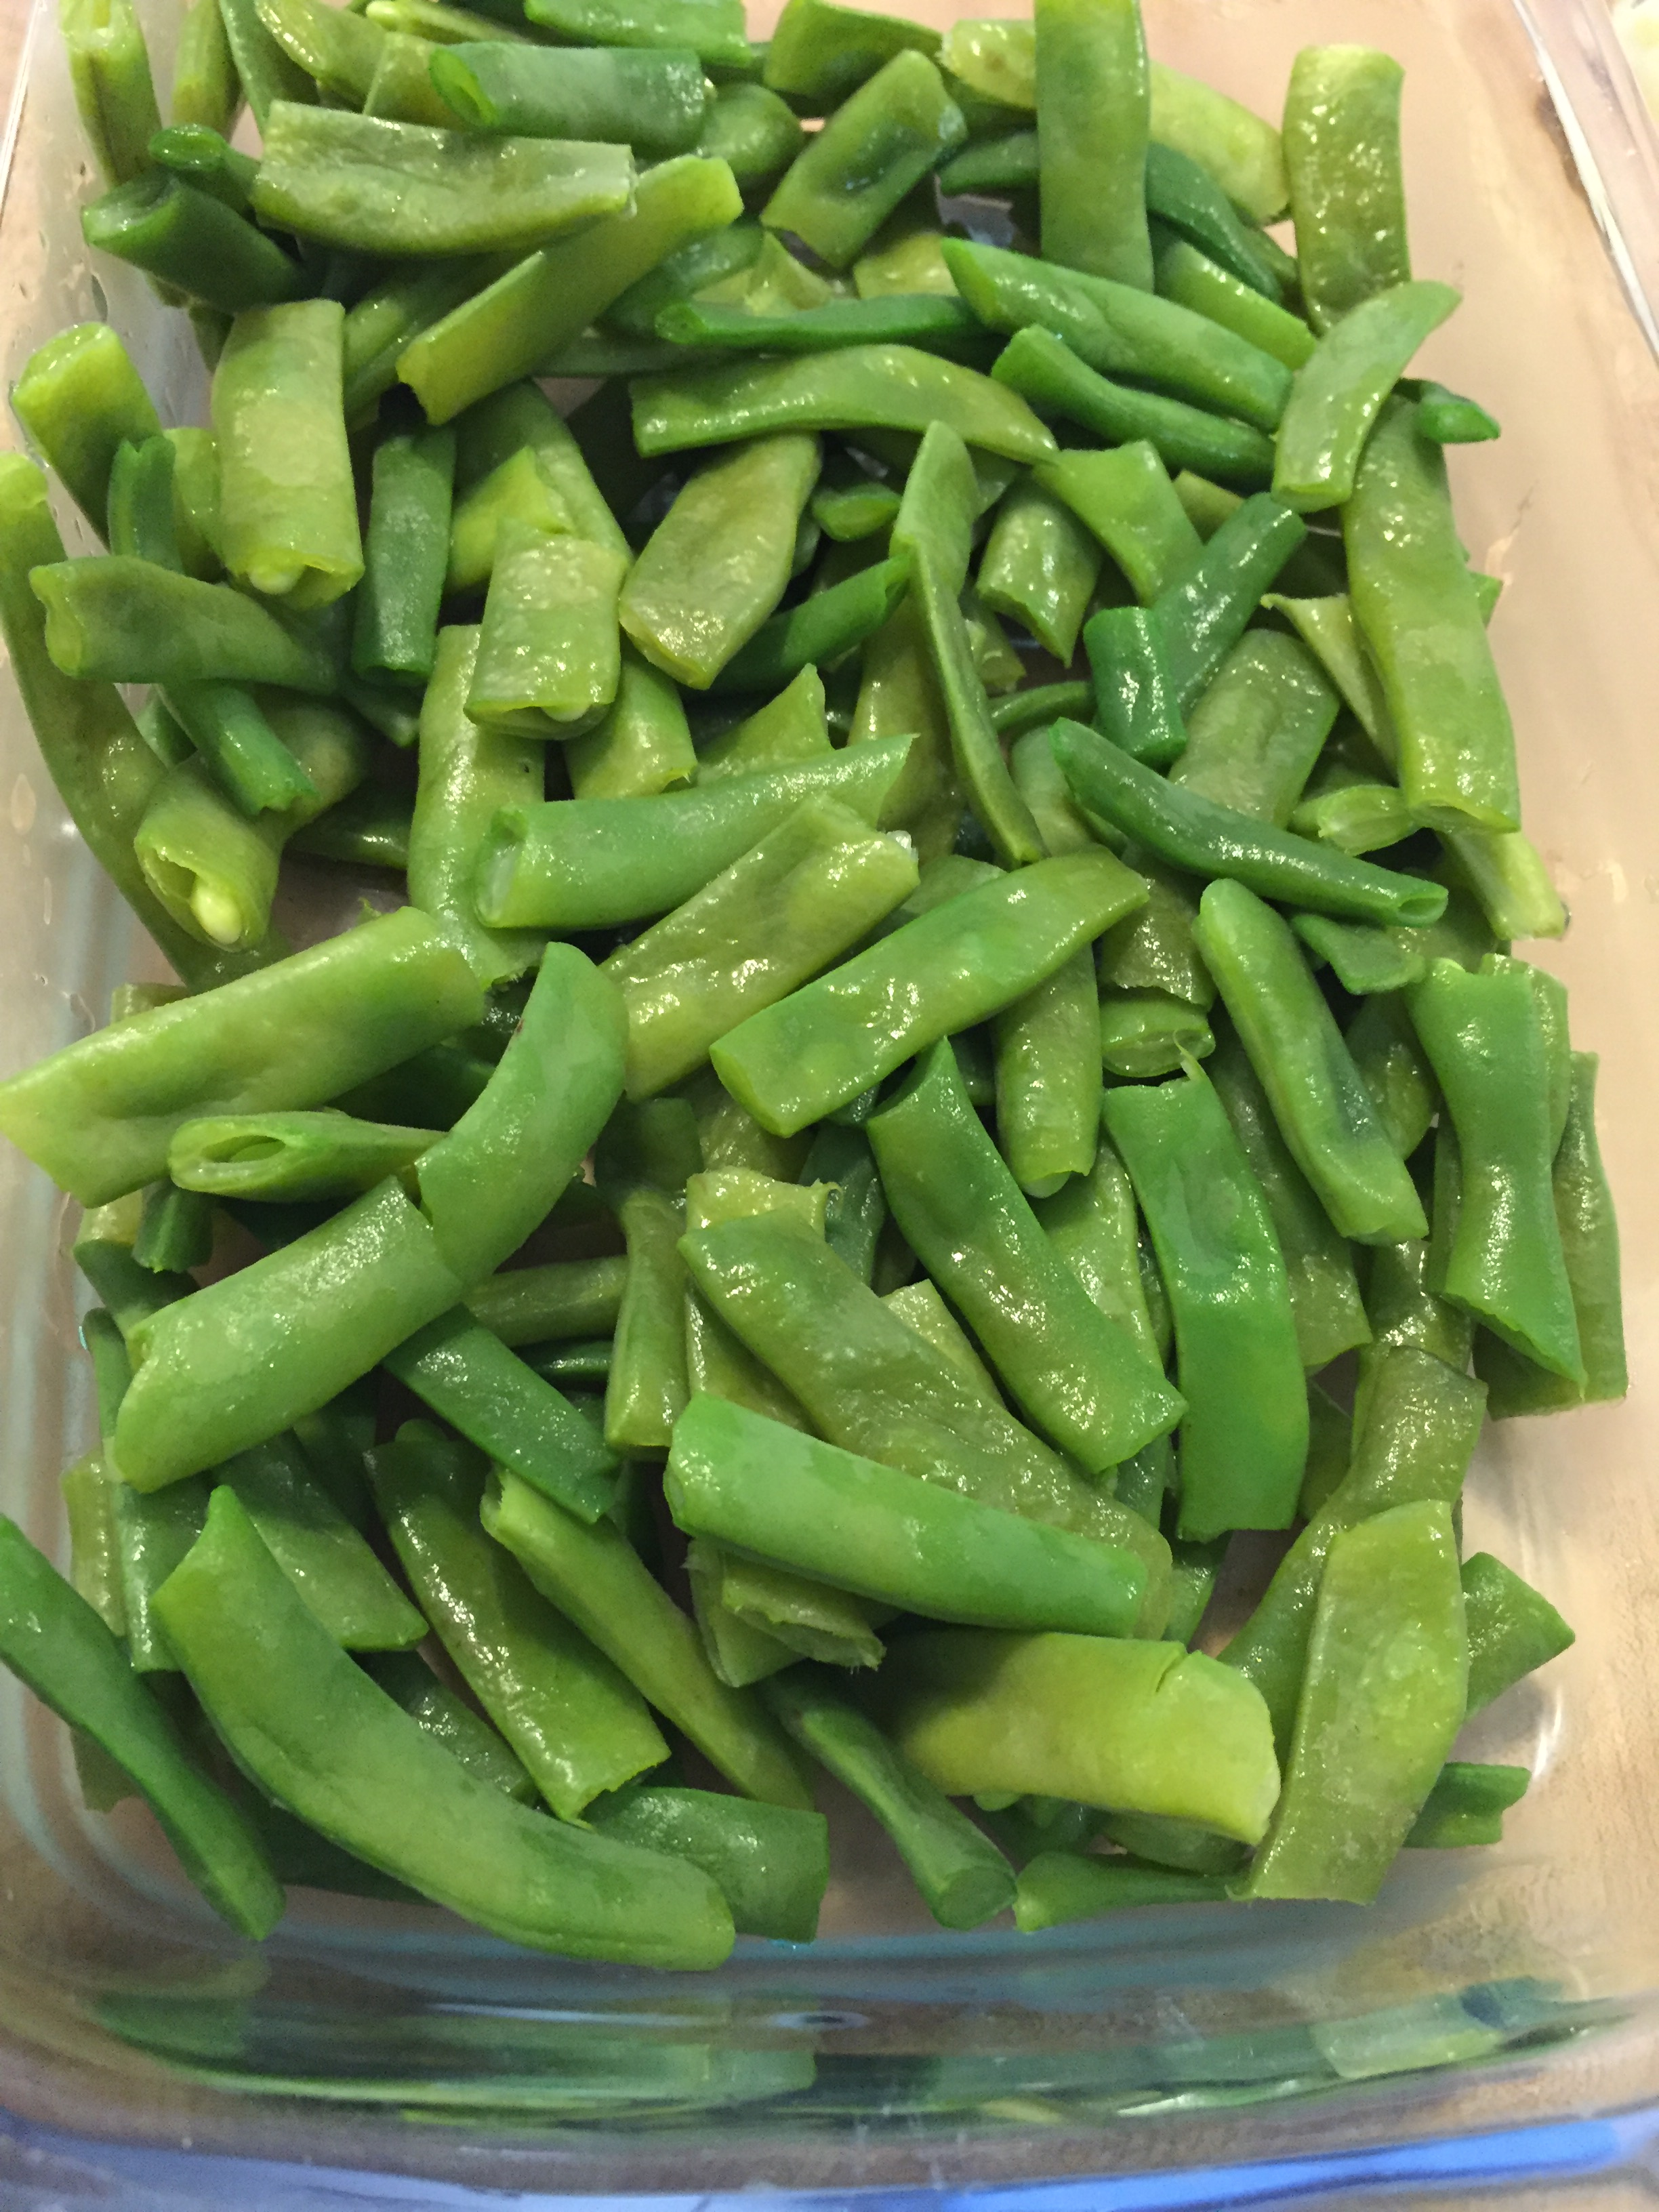 How to Blanch Vegetables, Blanching Vegetables